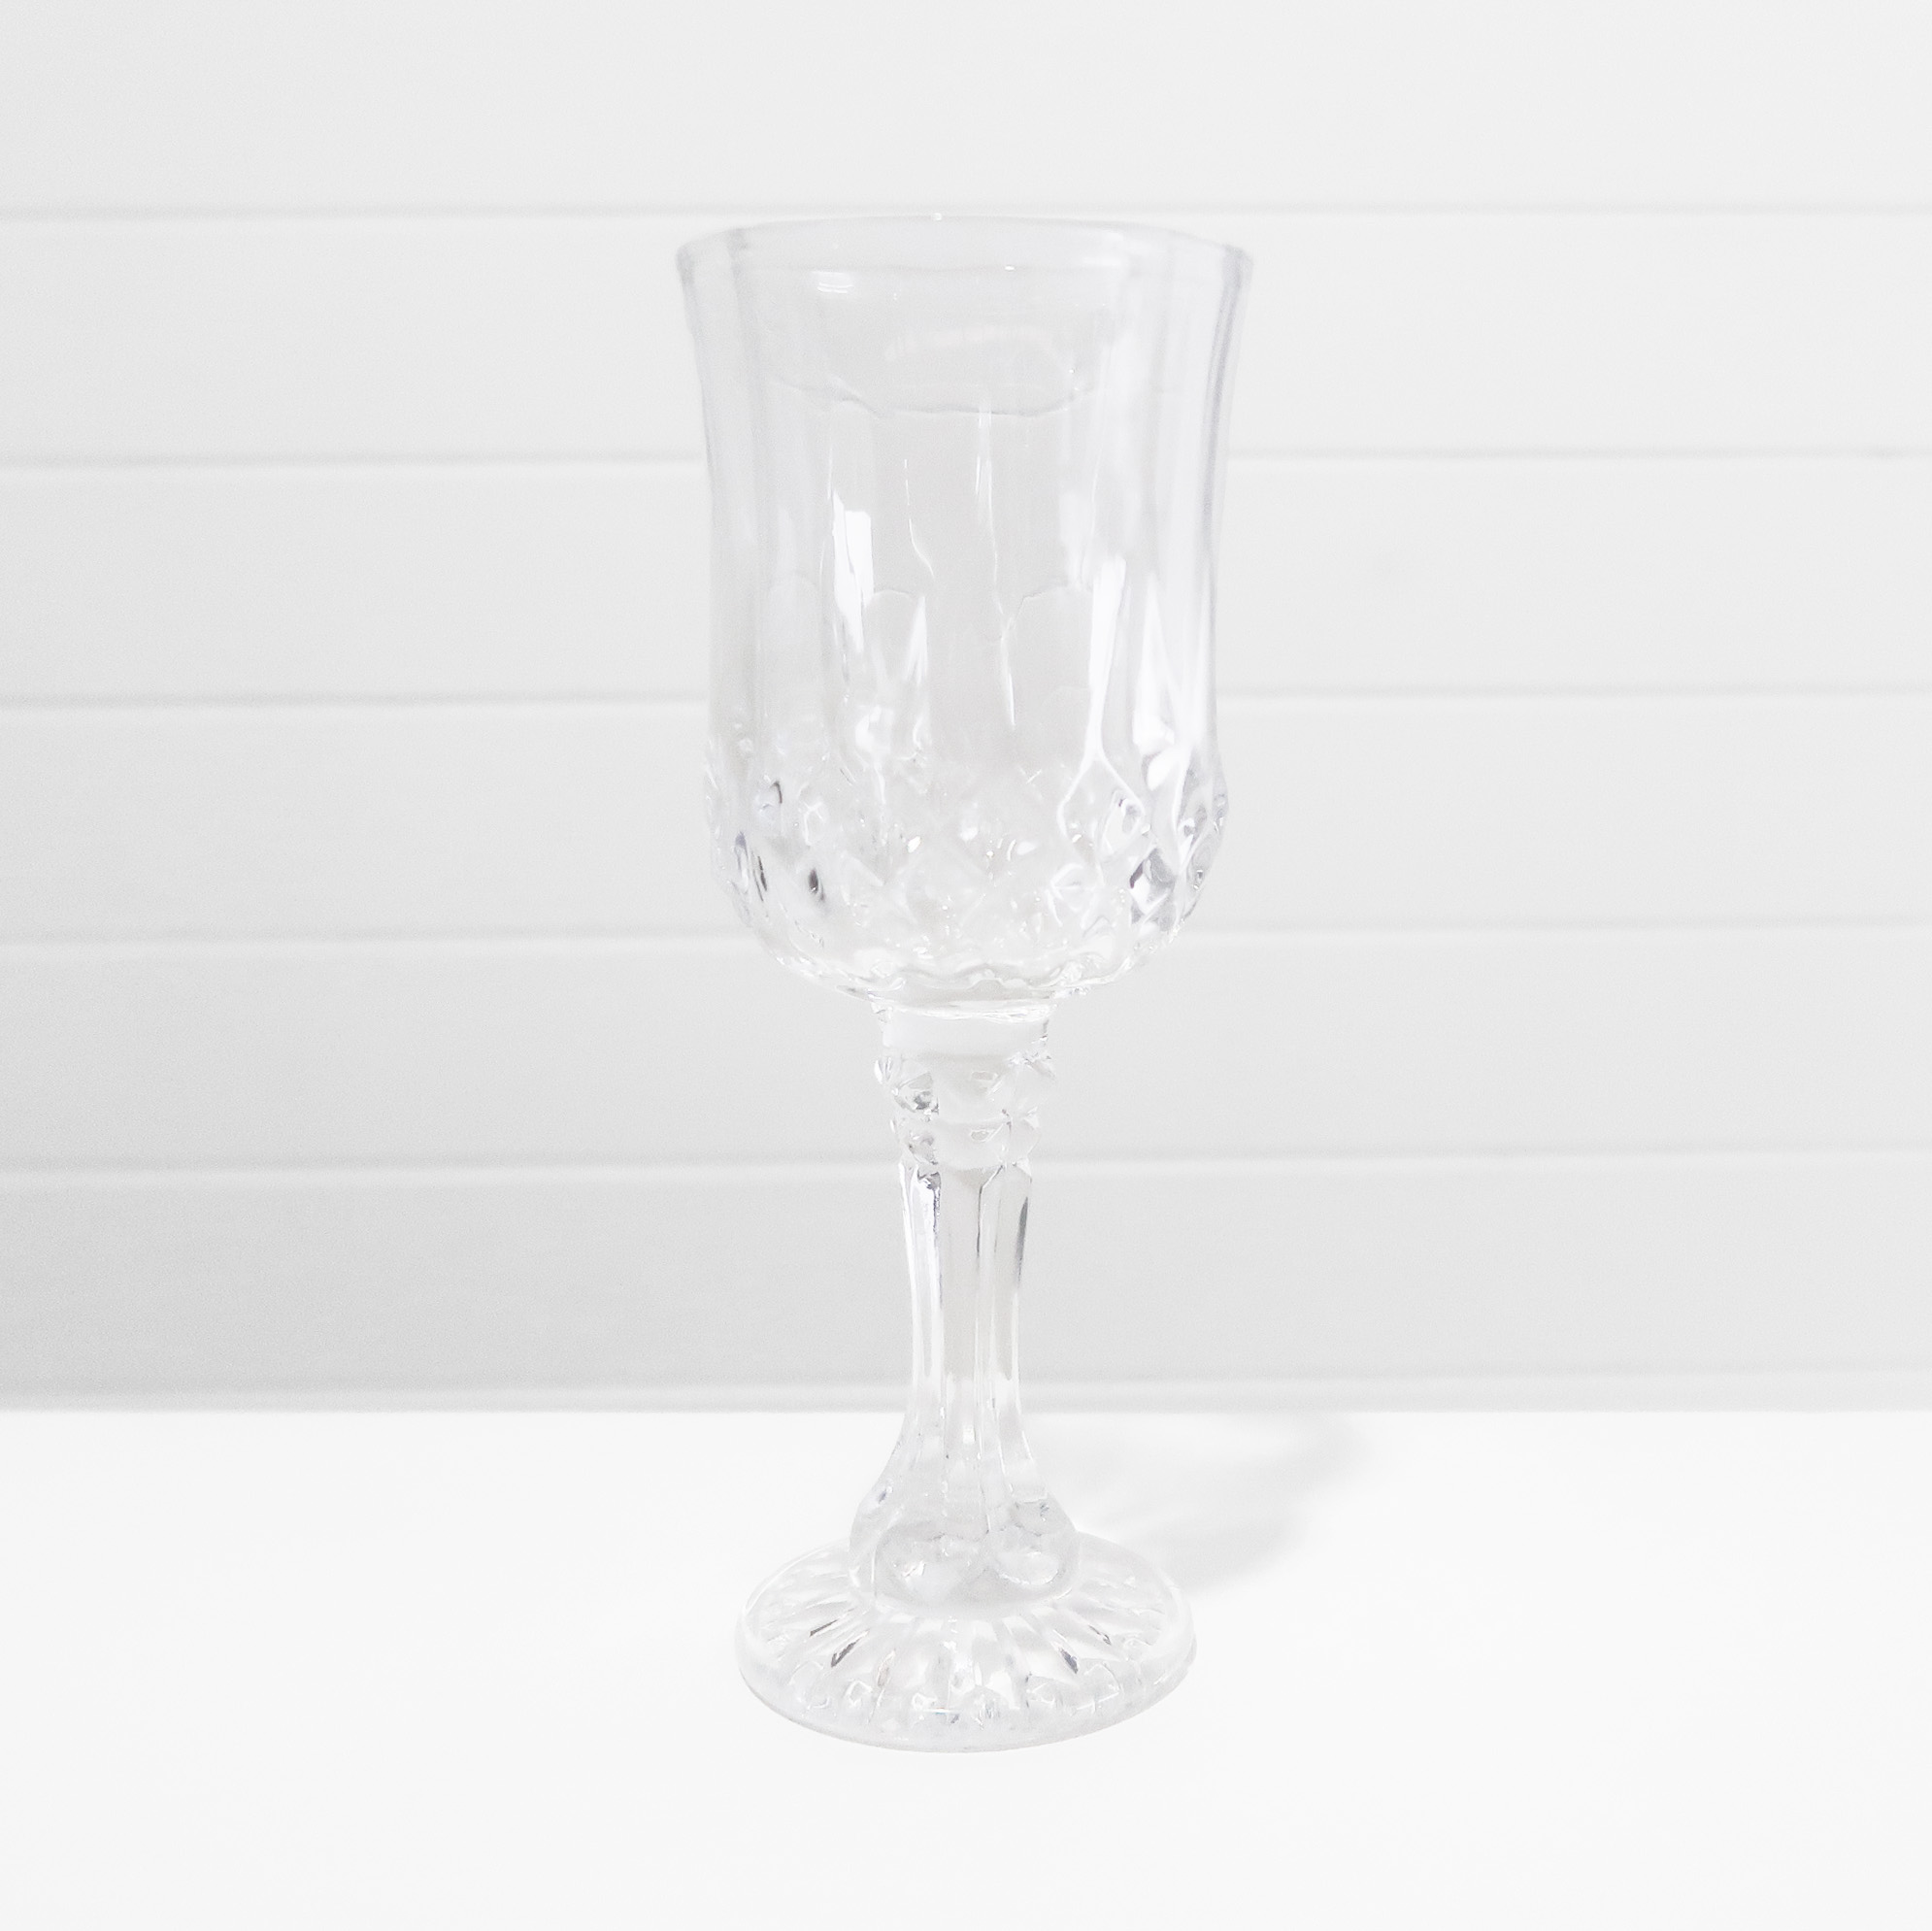 Decorative Wine Glass copy 2.JPG